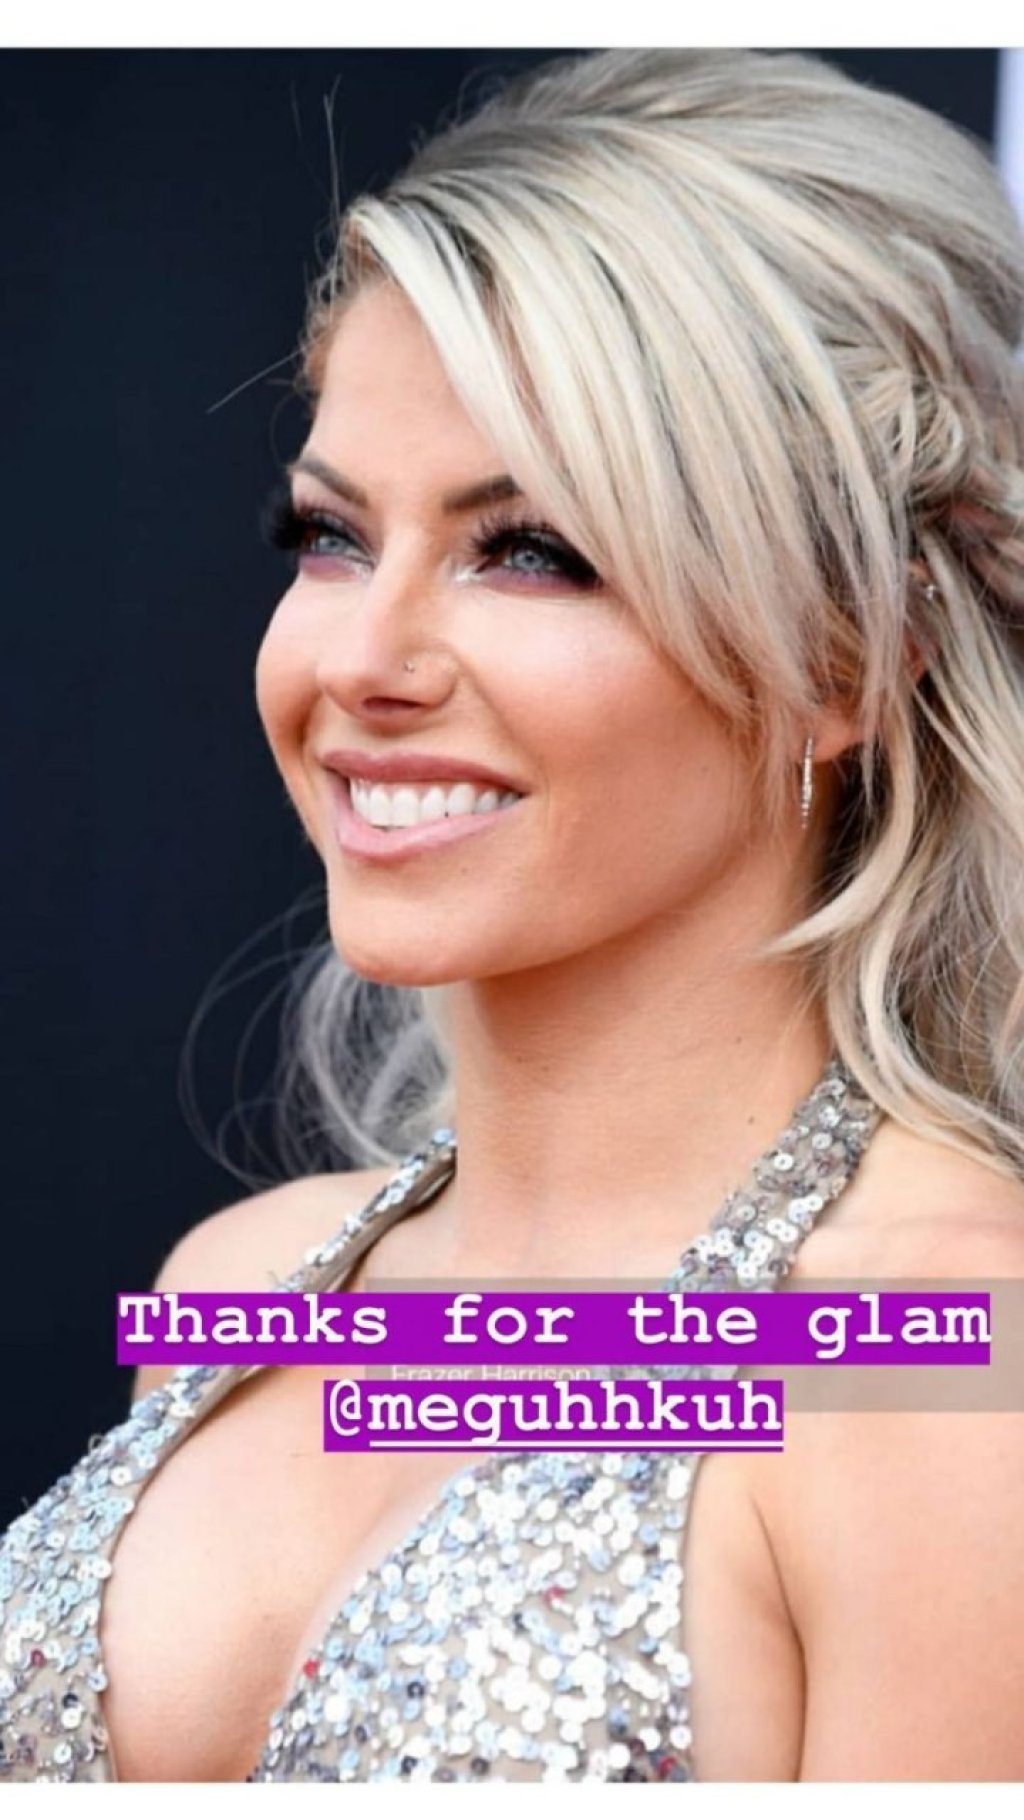 WWE Alexa Bliss Leaked Pussy Pics, Blow Job and Sex Photos